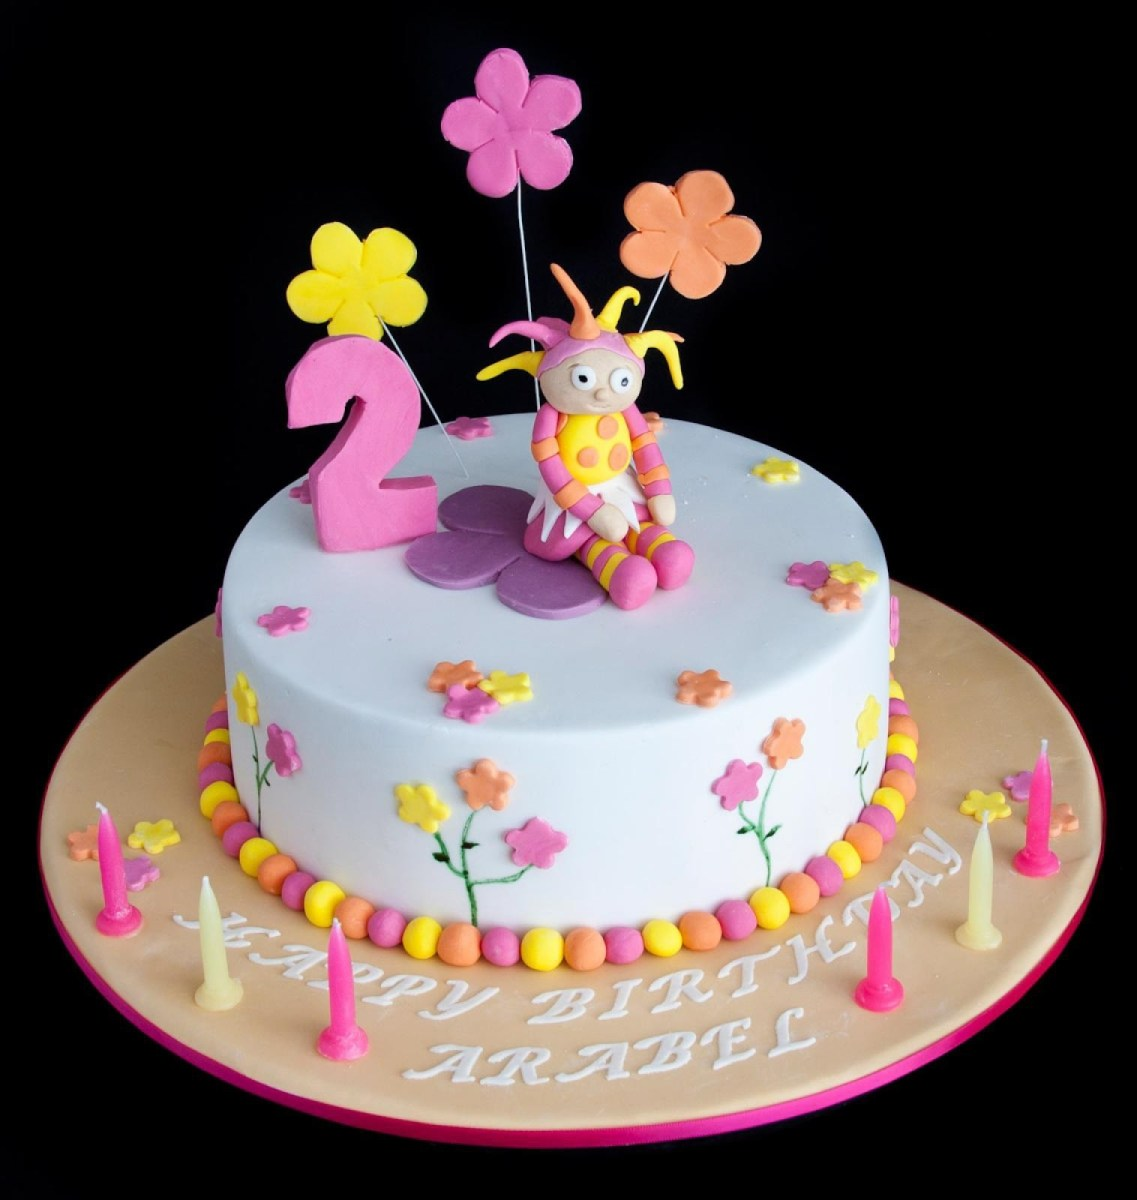 Marvelous Girl Birthday Cake Buy Toddler Birthday Cake For Boys Online At Personalised Birthday Cards Veneteletsinfo